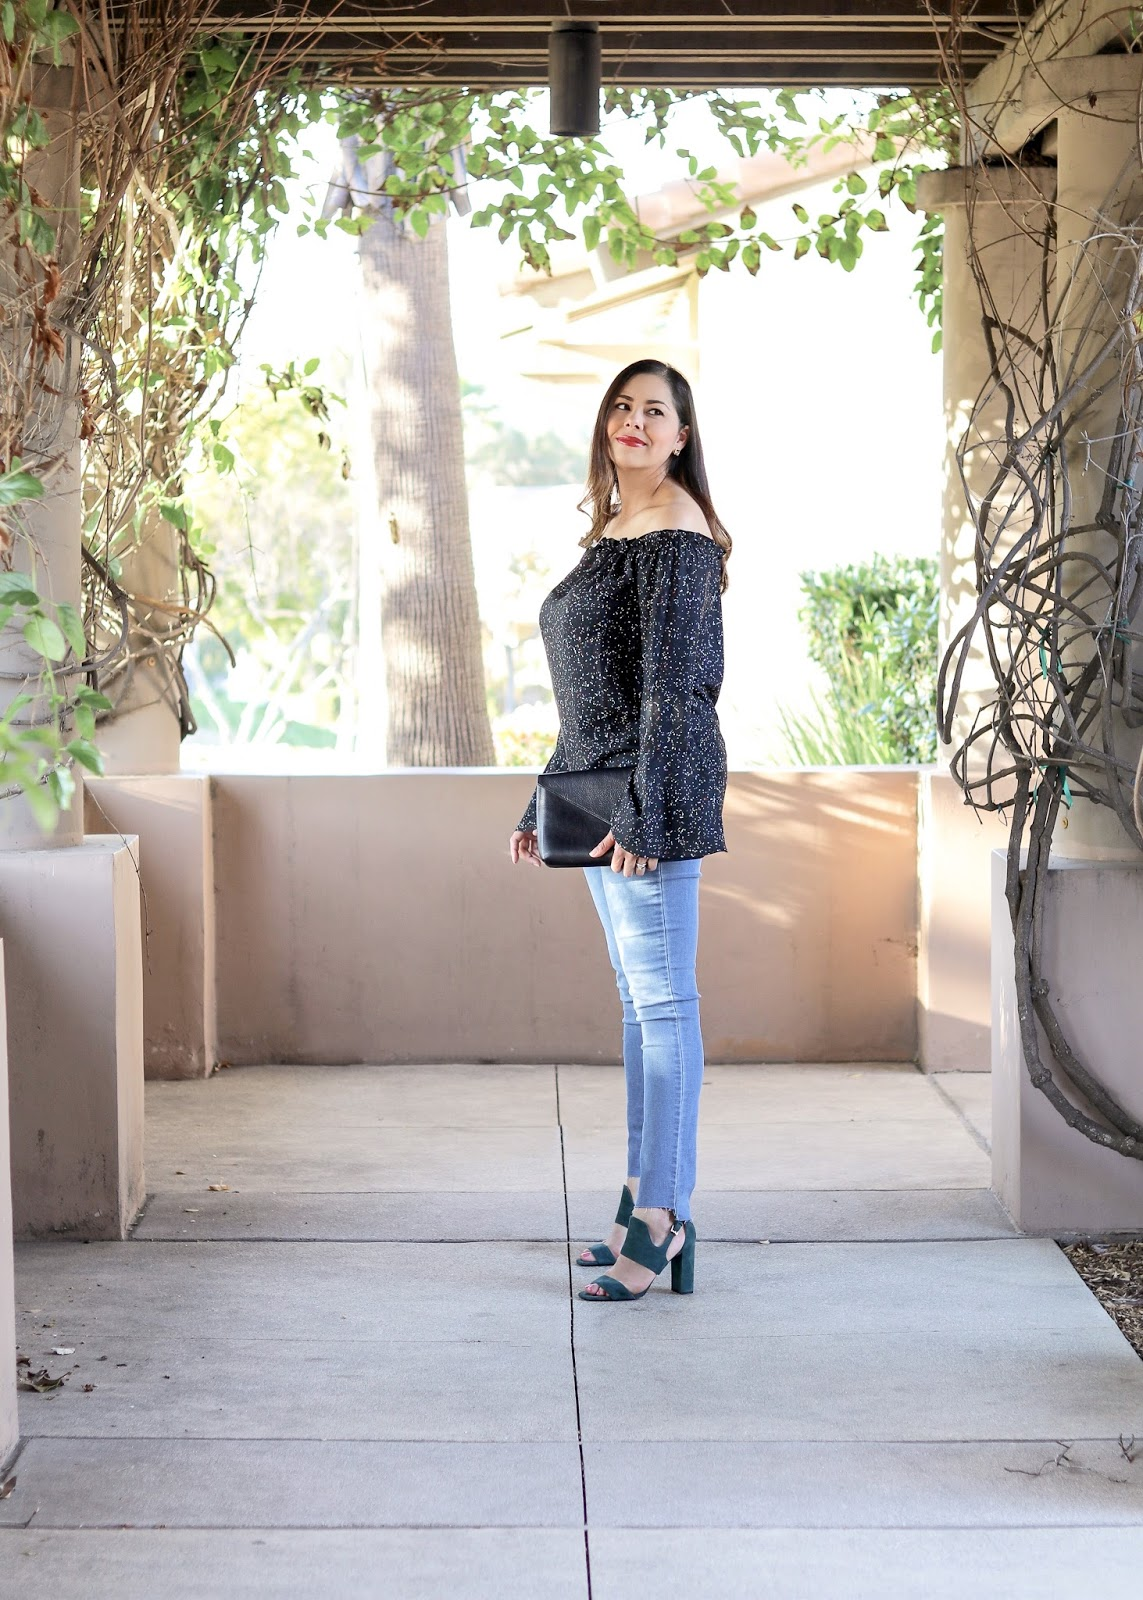 How to wear a block heeled sandal, banana republic block heel, banana republic blogger